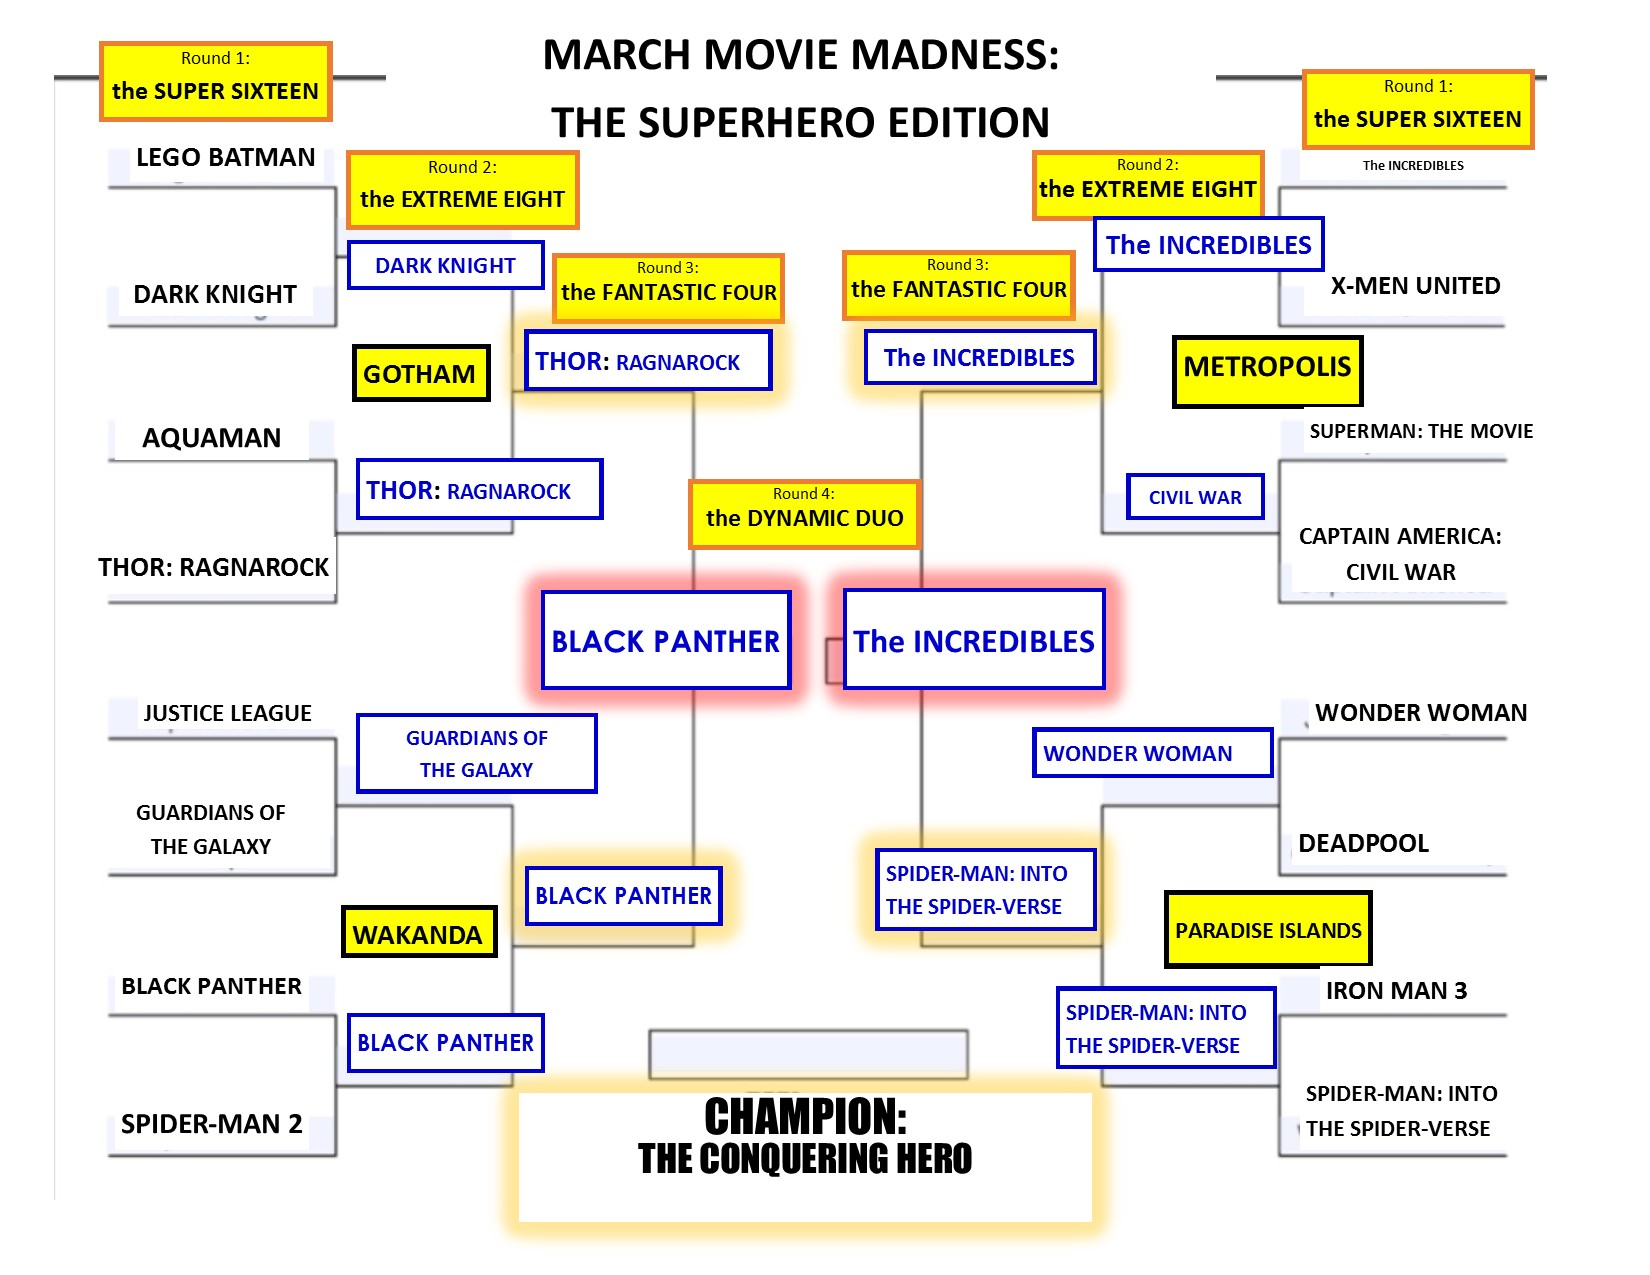 Image of brackets for Lilly Library March Movie Madness showing results of Black Panther vs The Incredibles